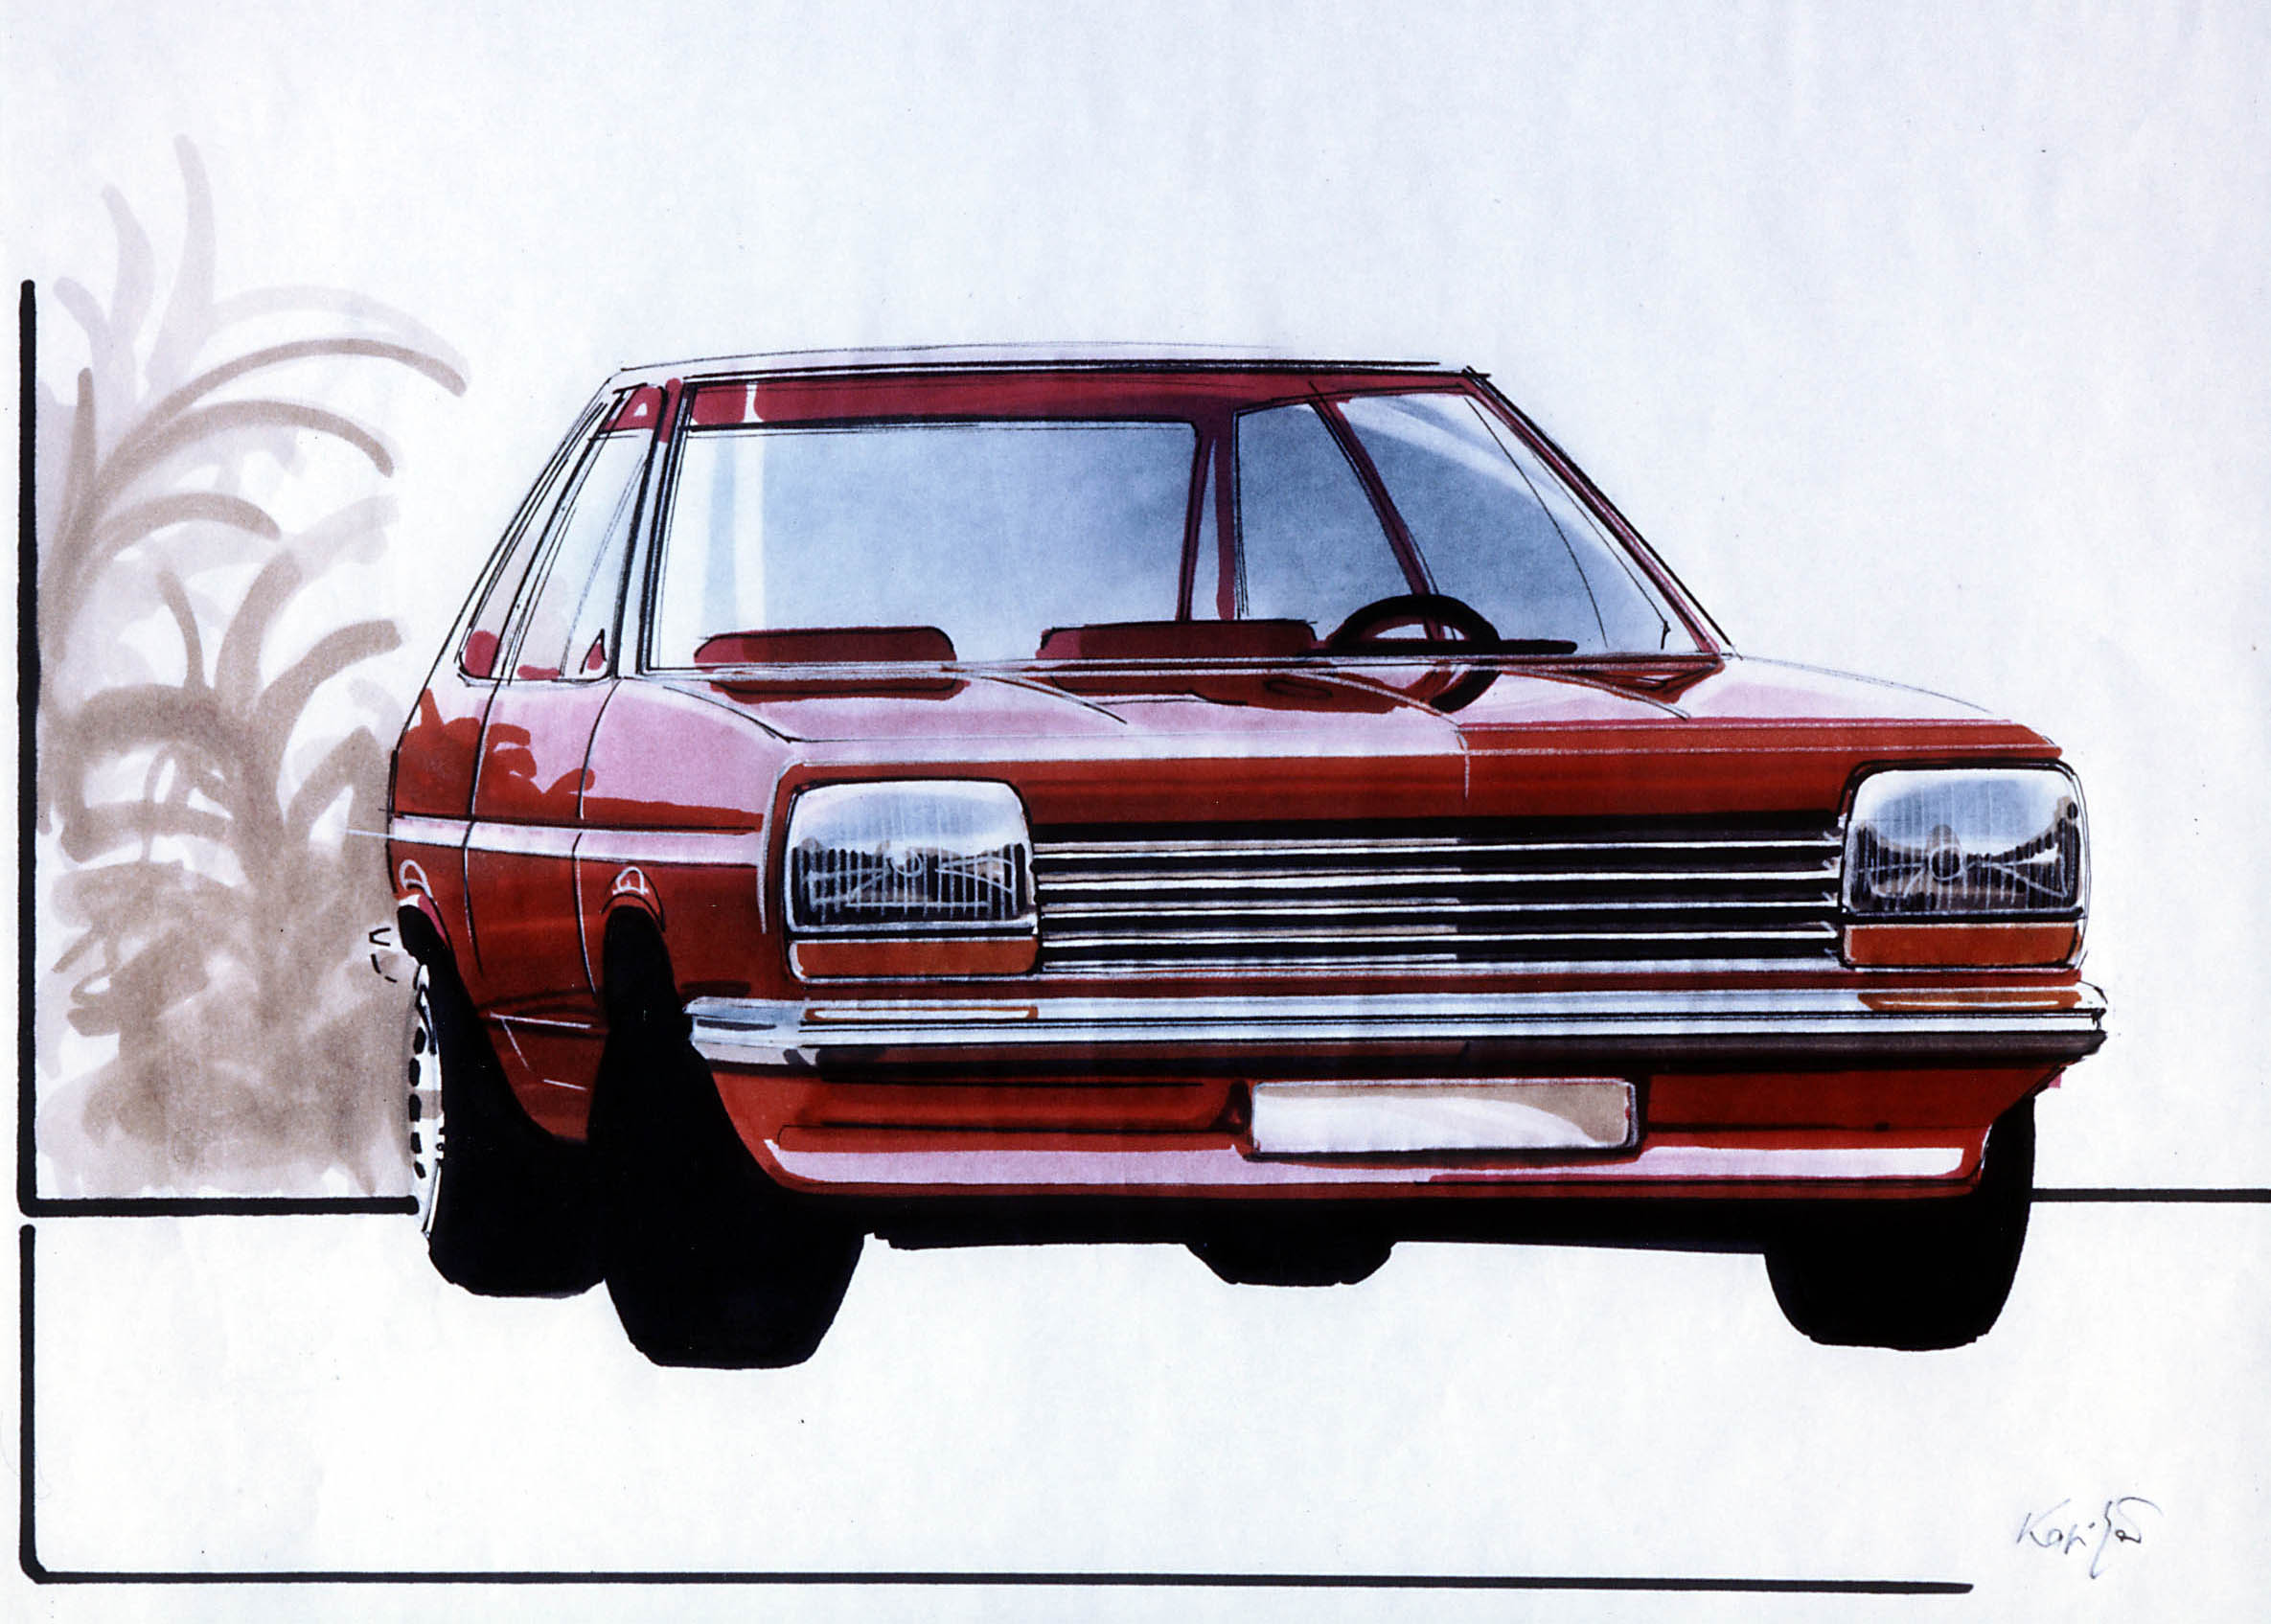 Ford Fiesta 1976 Cartype